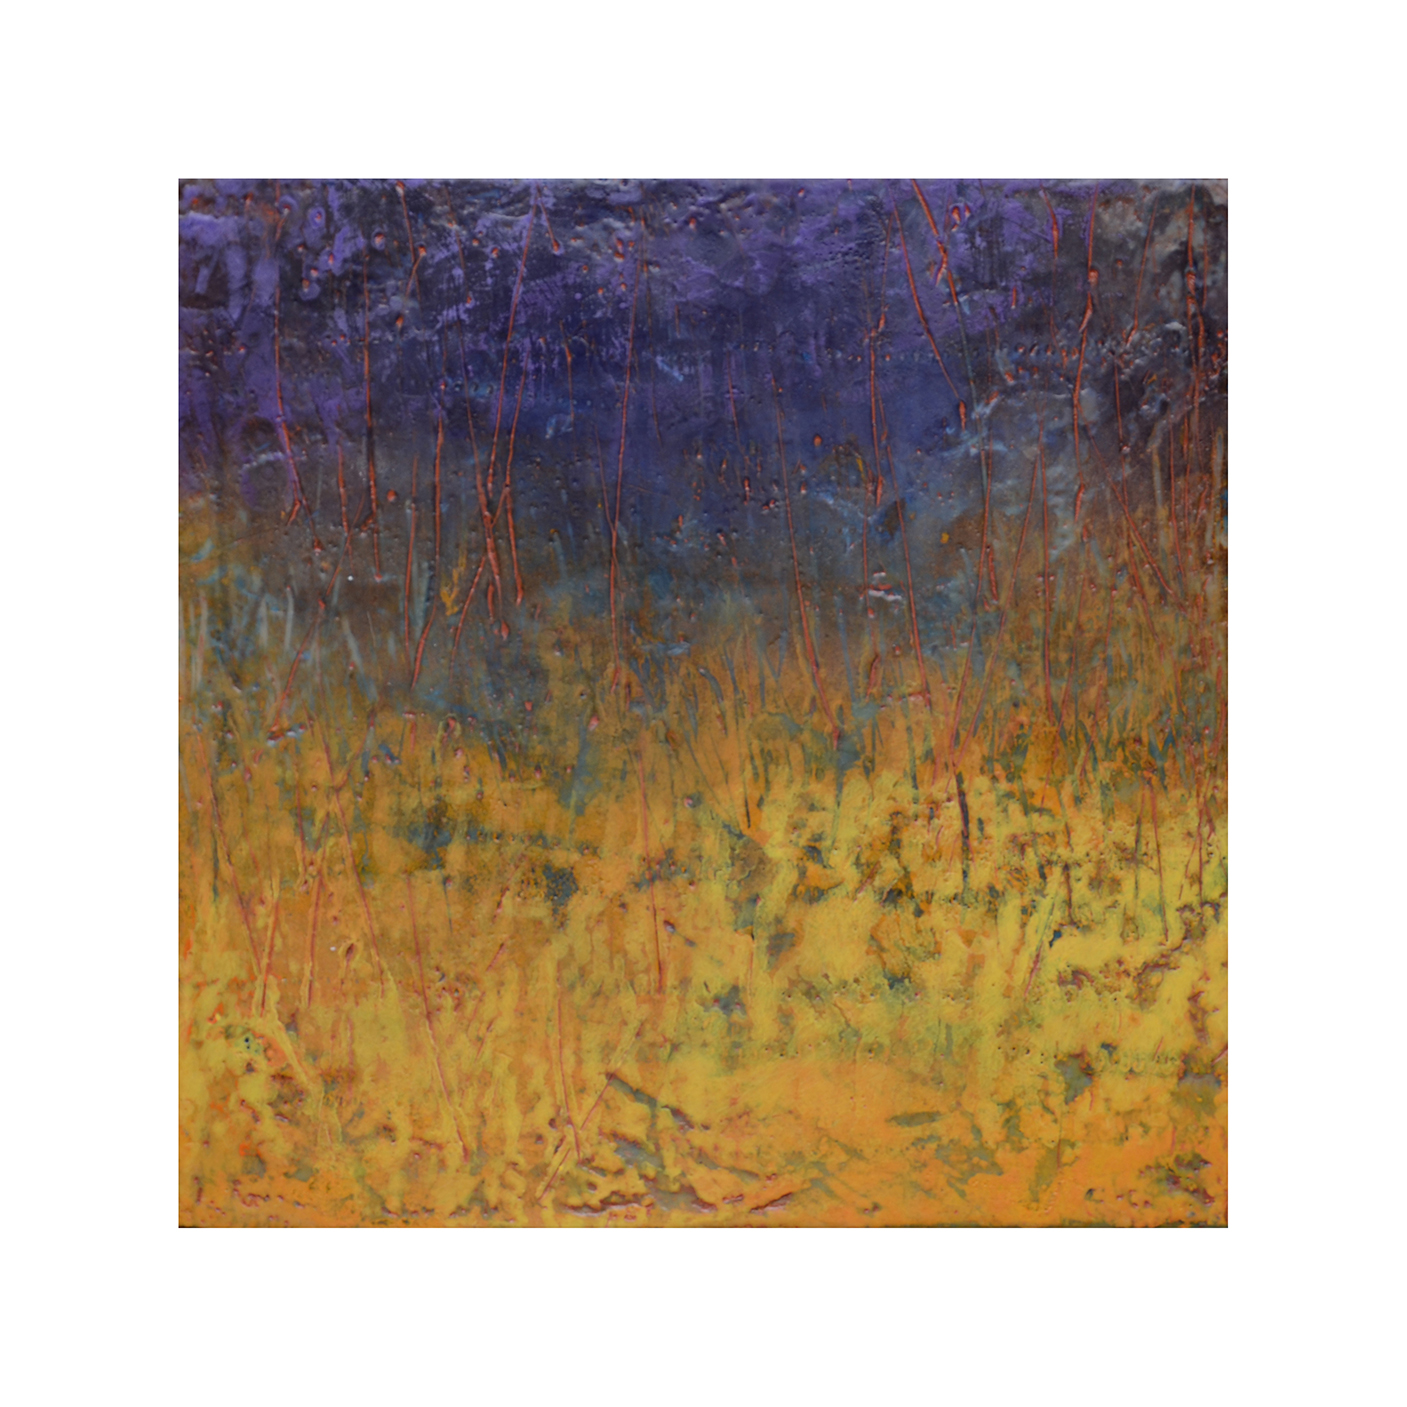 Field and Thicket   12 x 12  Encaustic on Panel  $300